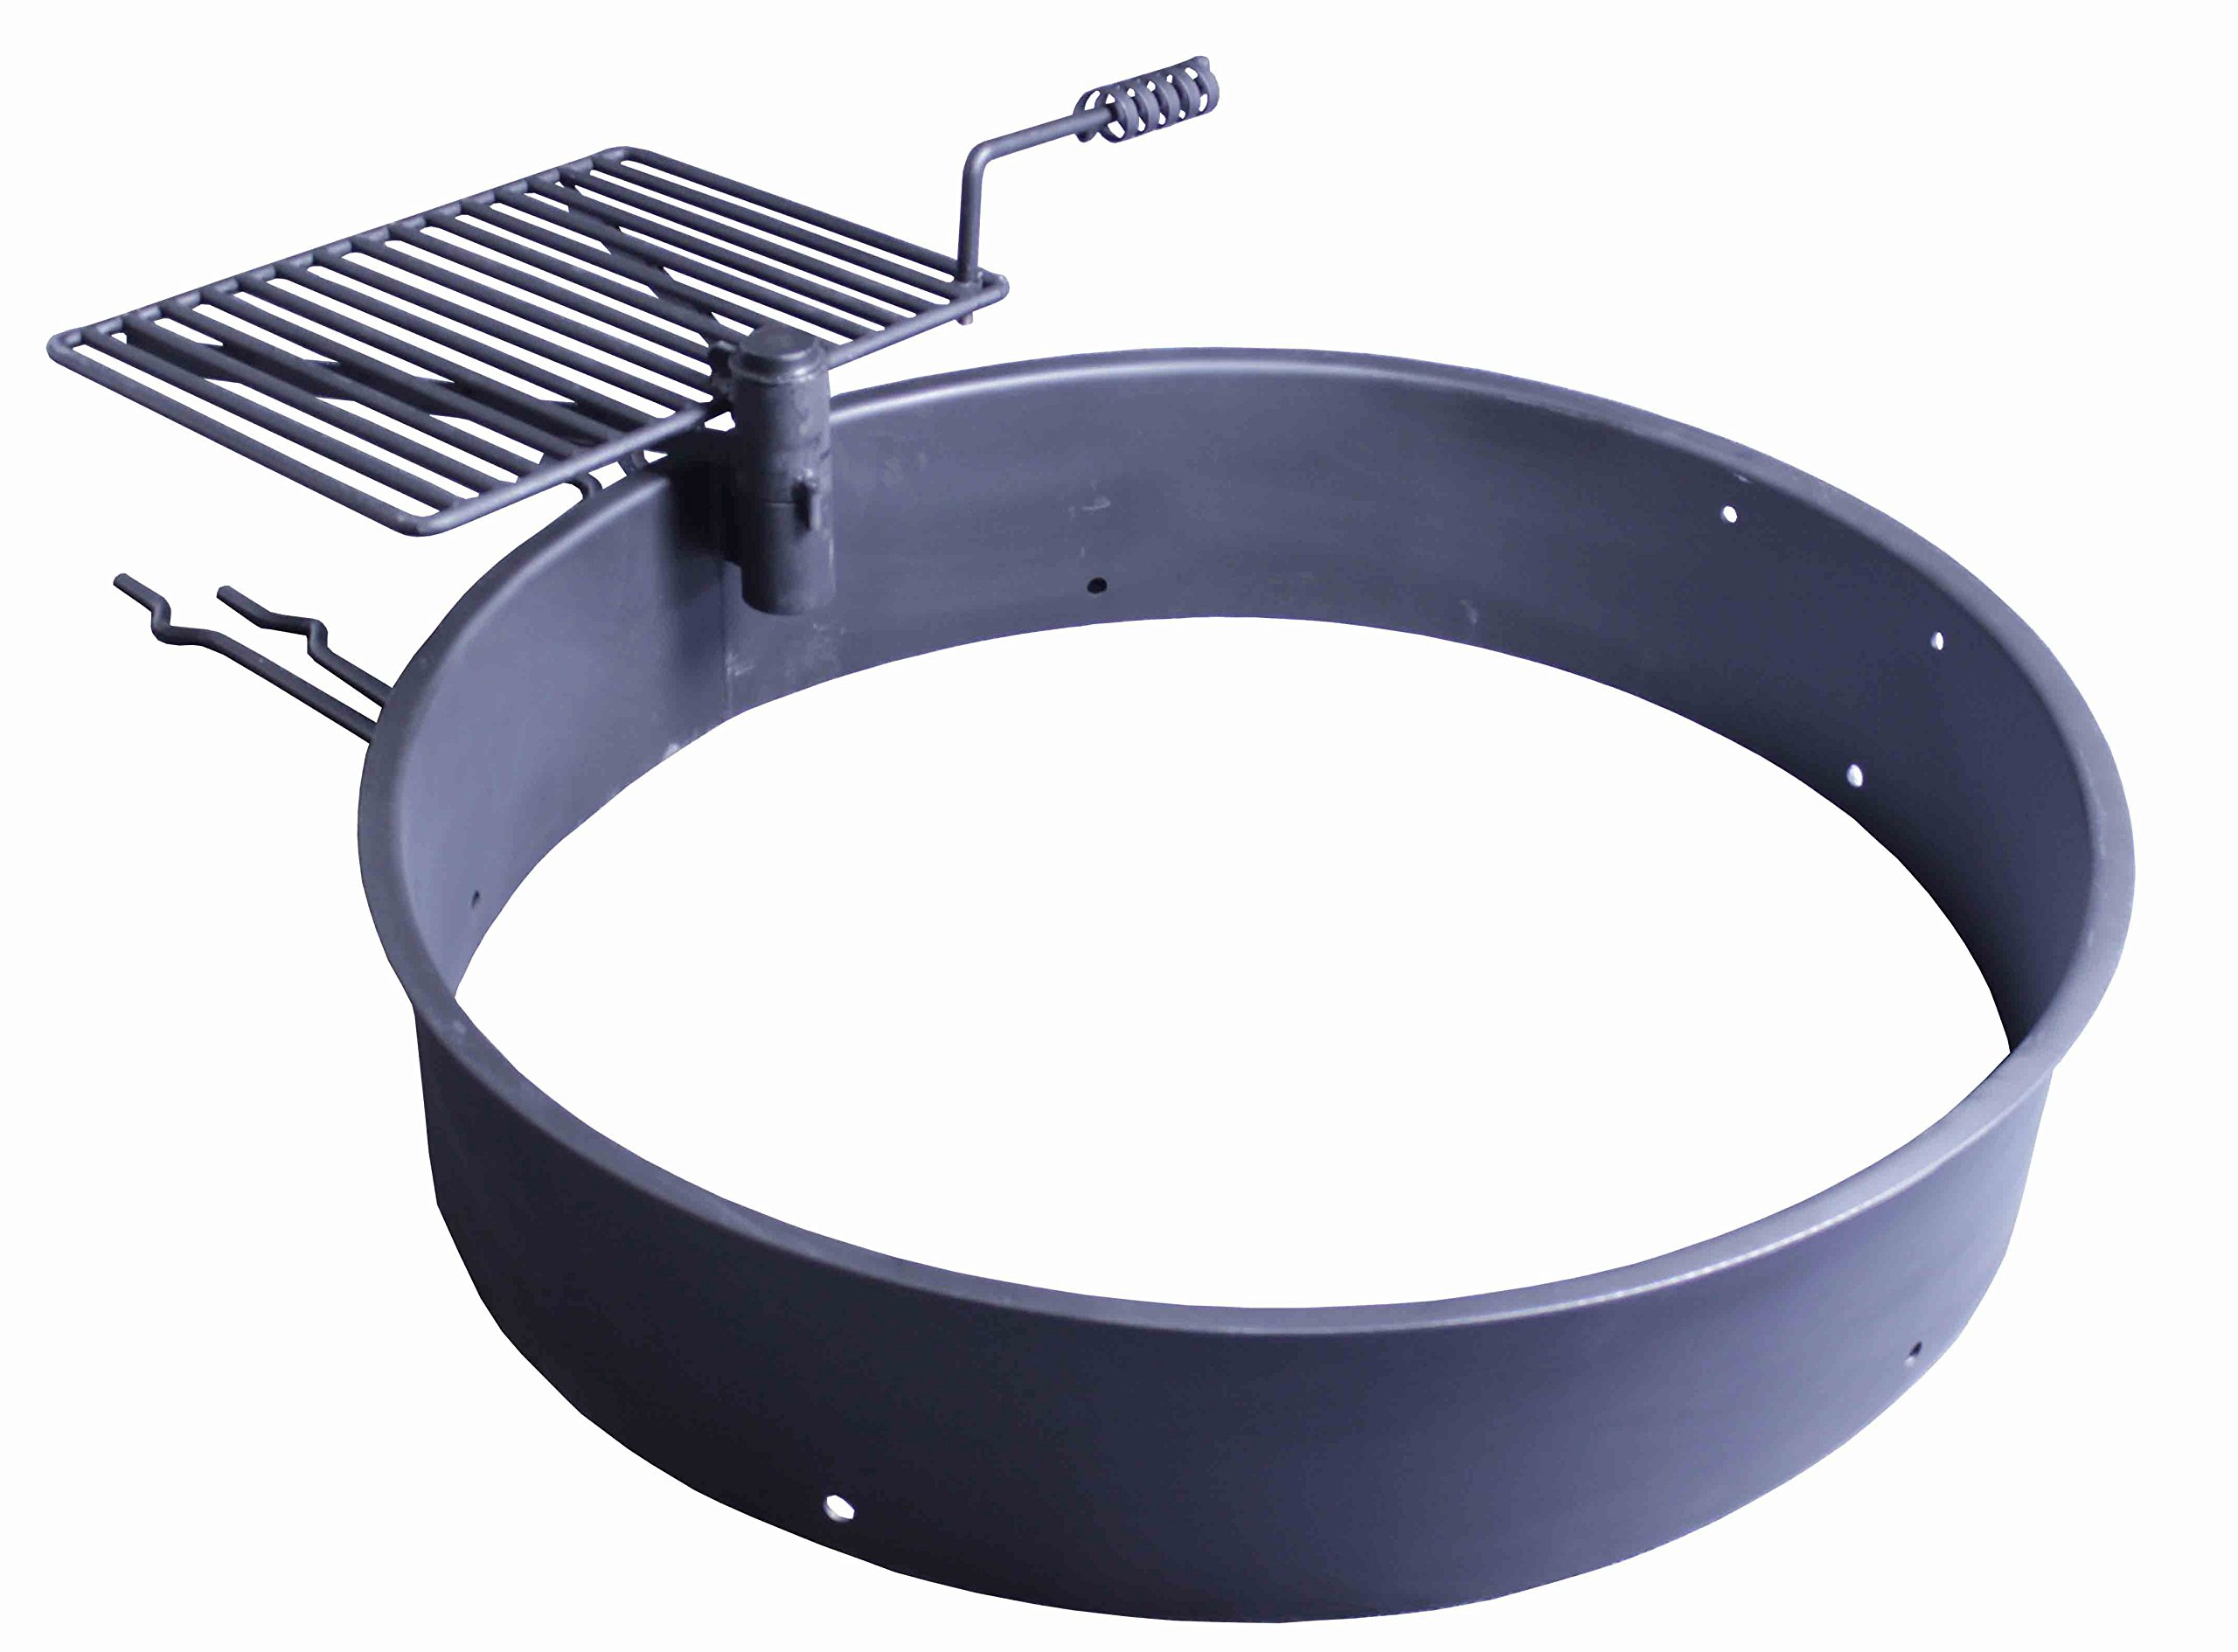 36'' Steel Fire Ring with Cooking Grate Campfire Pit Park Grill BBQ Camping Trail by Titan Outdoors (Image #5)